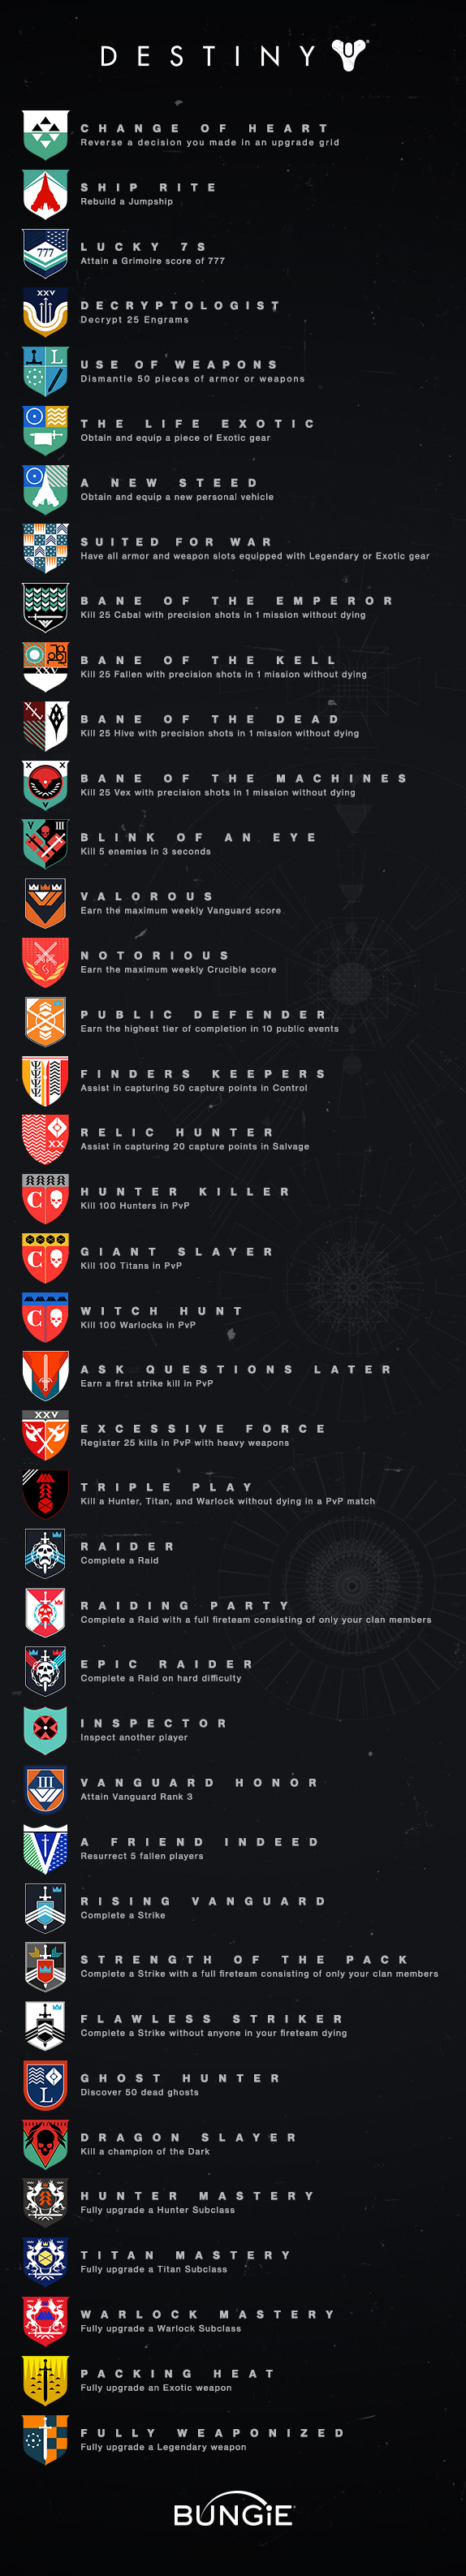 destinytrophies